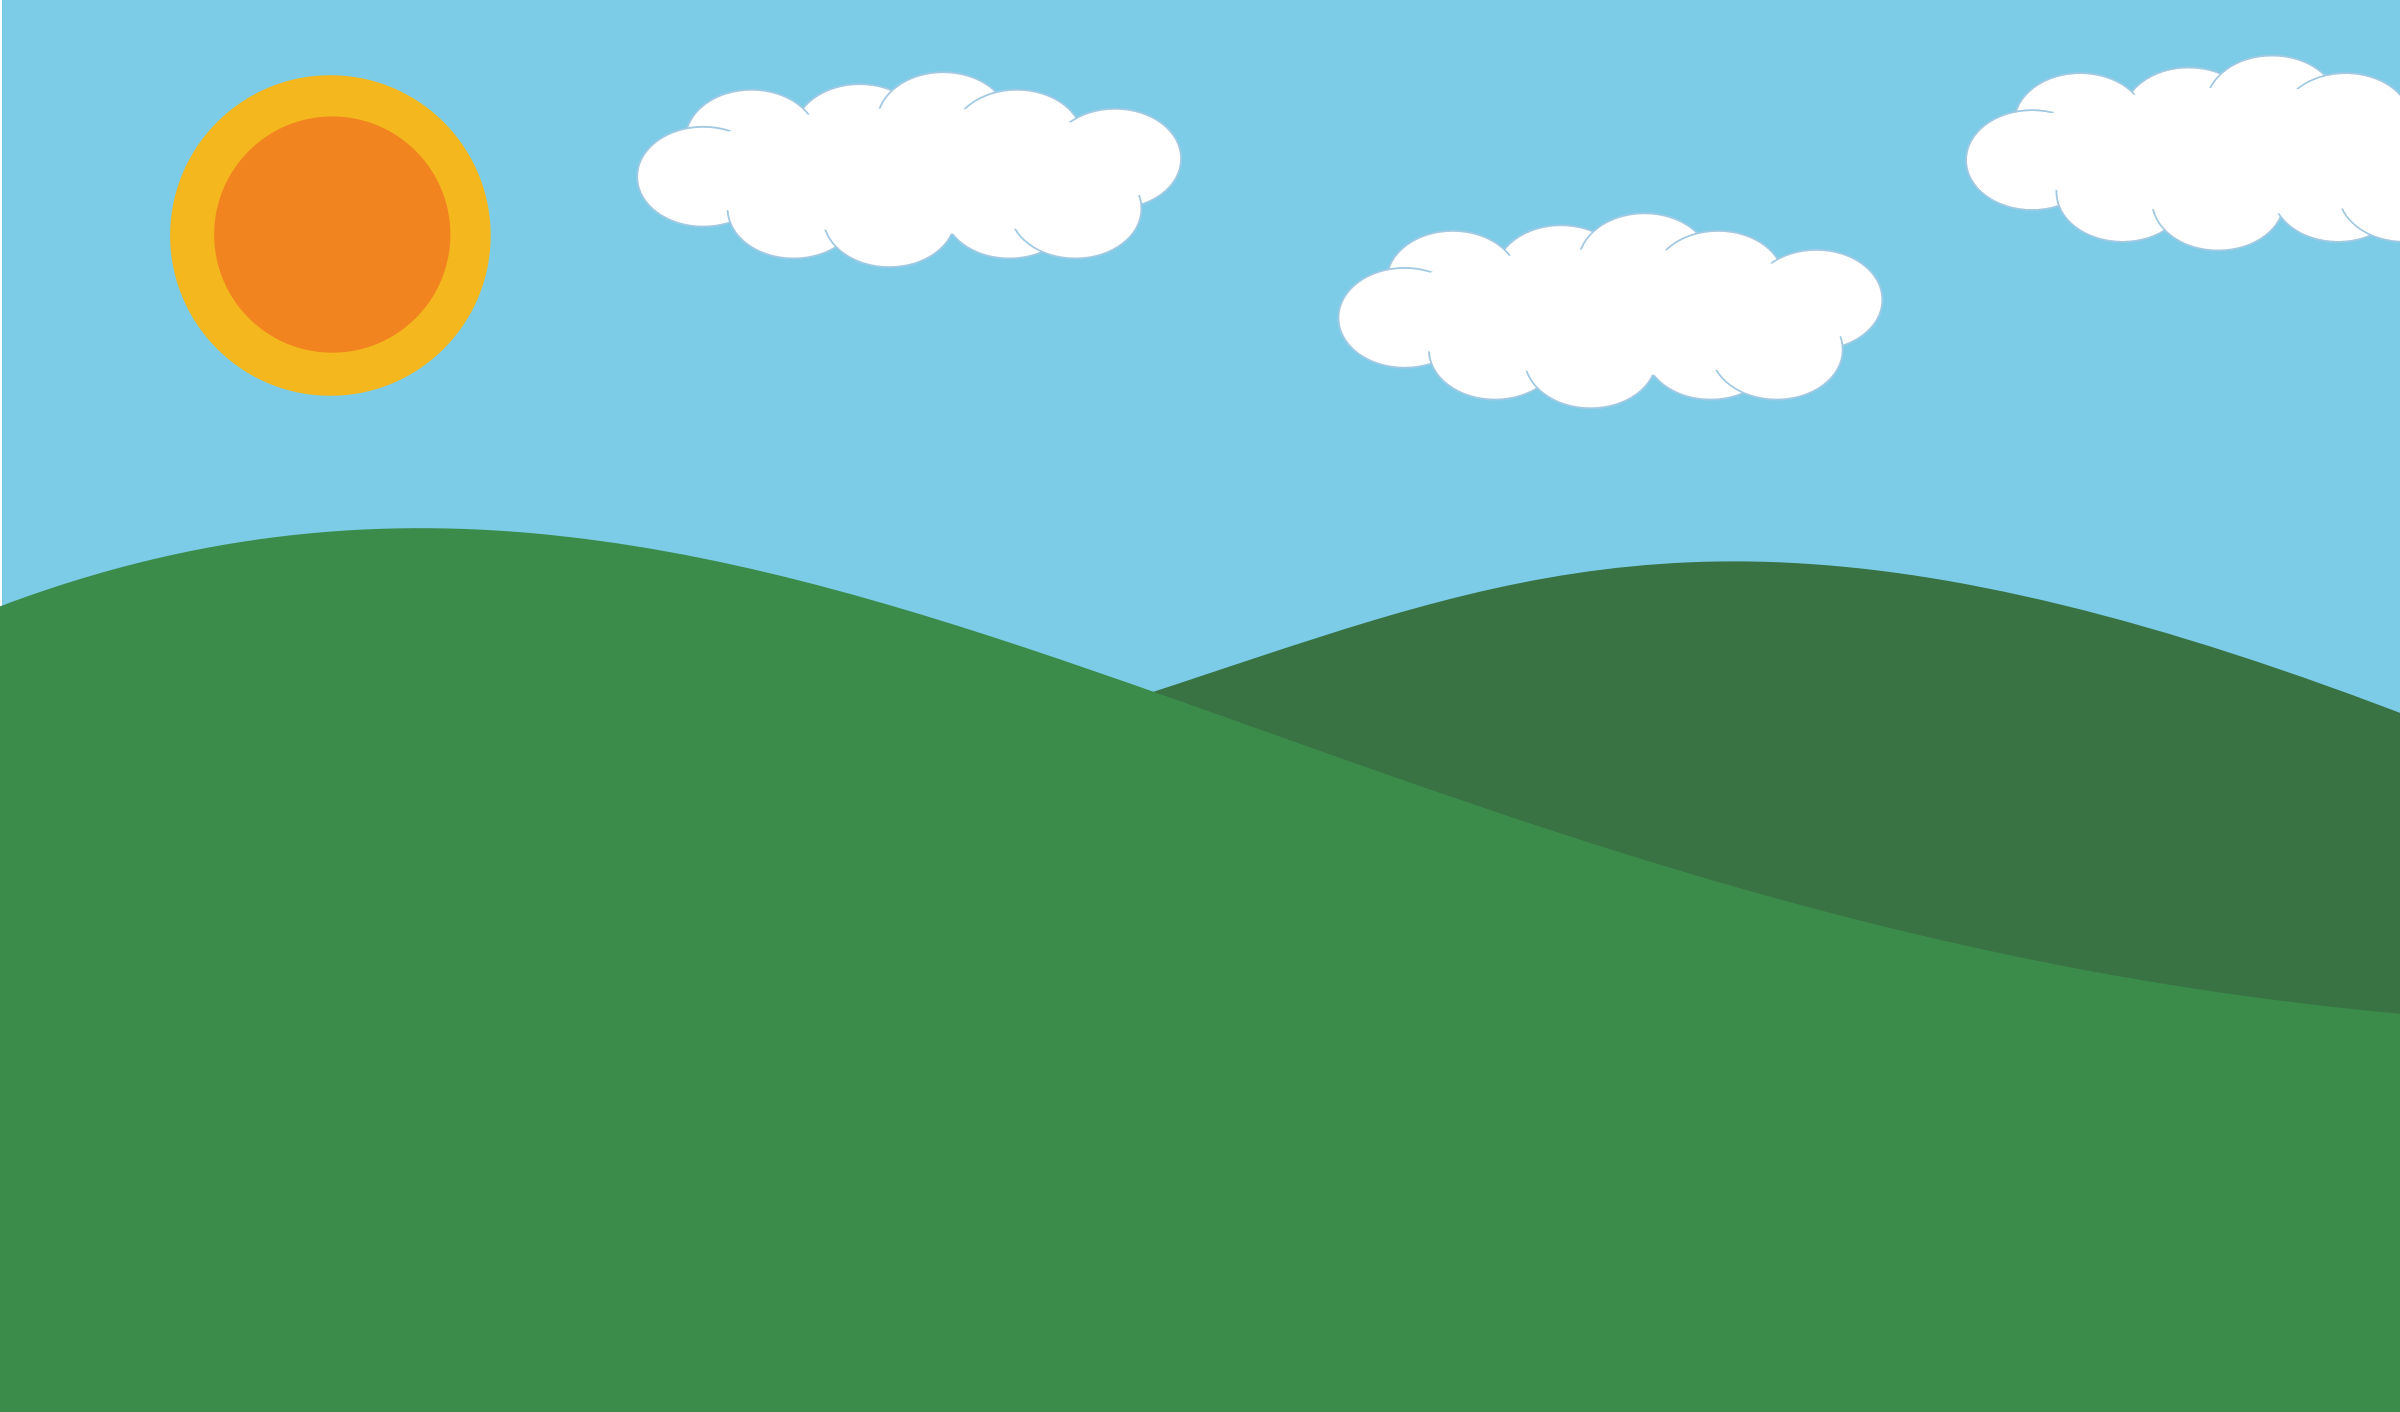 jpg royalty free download Free cartoon hills cliparts. Hill clipart